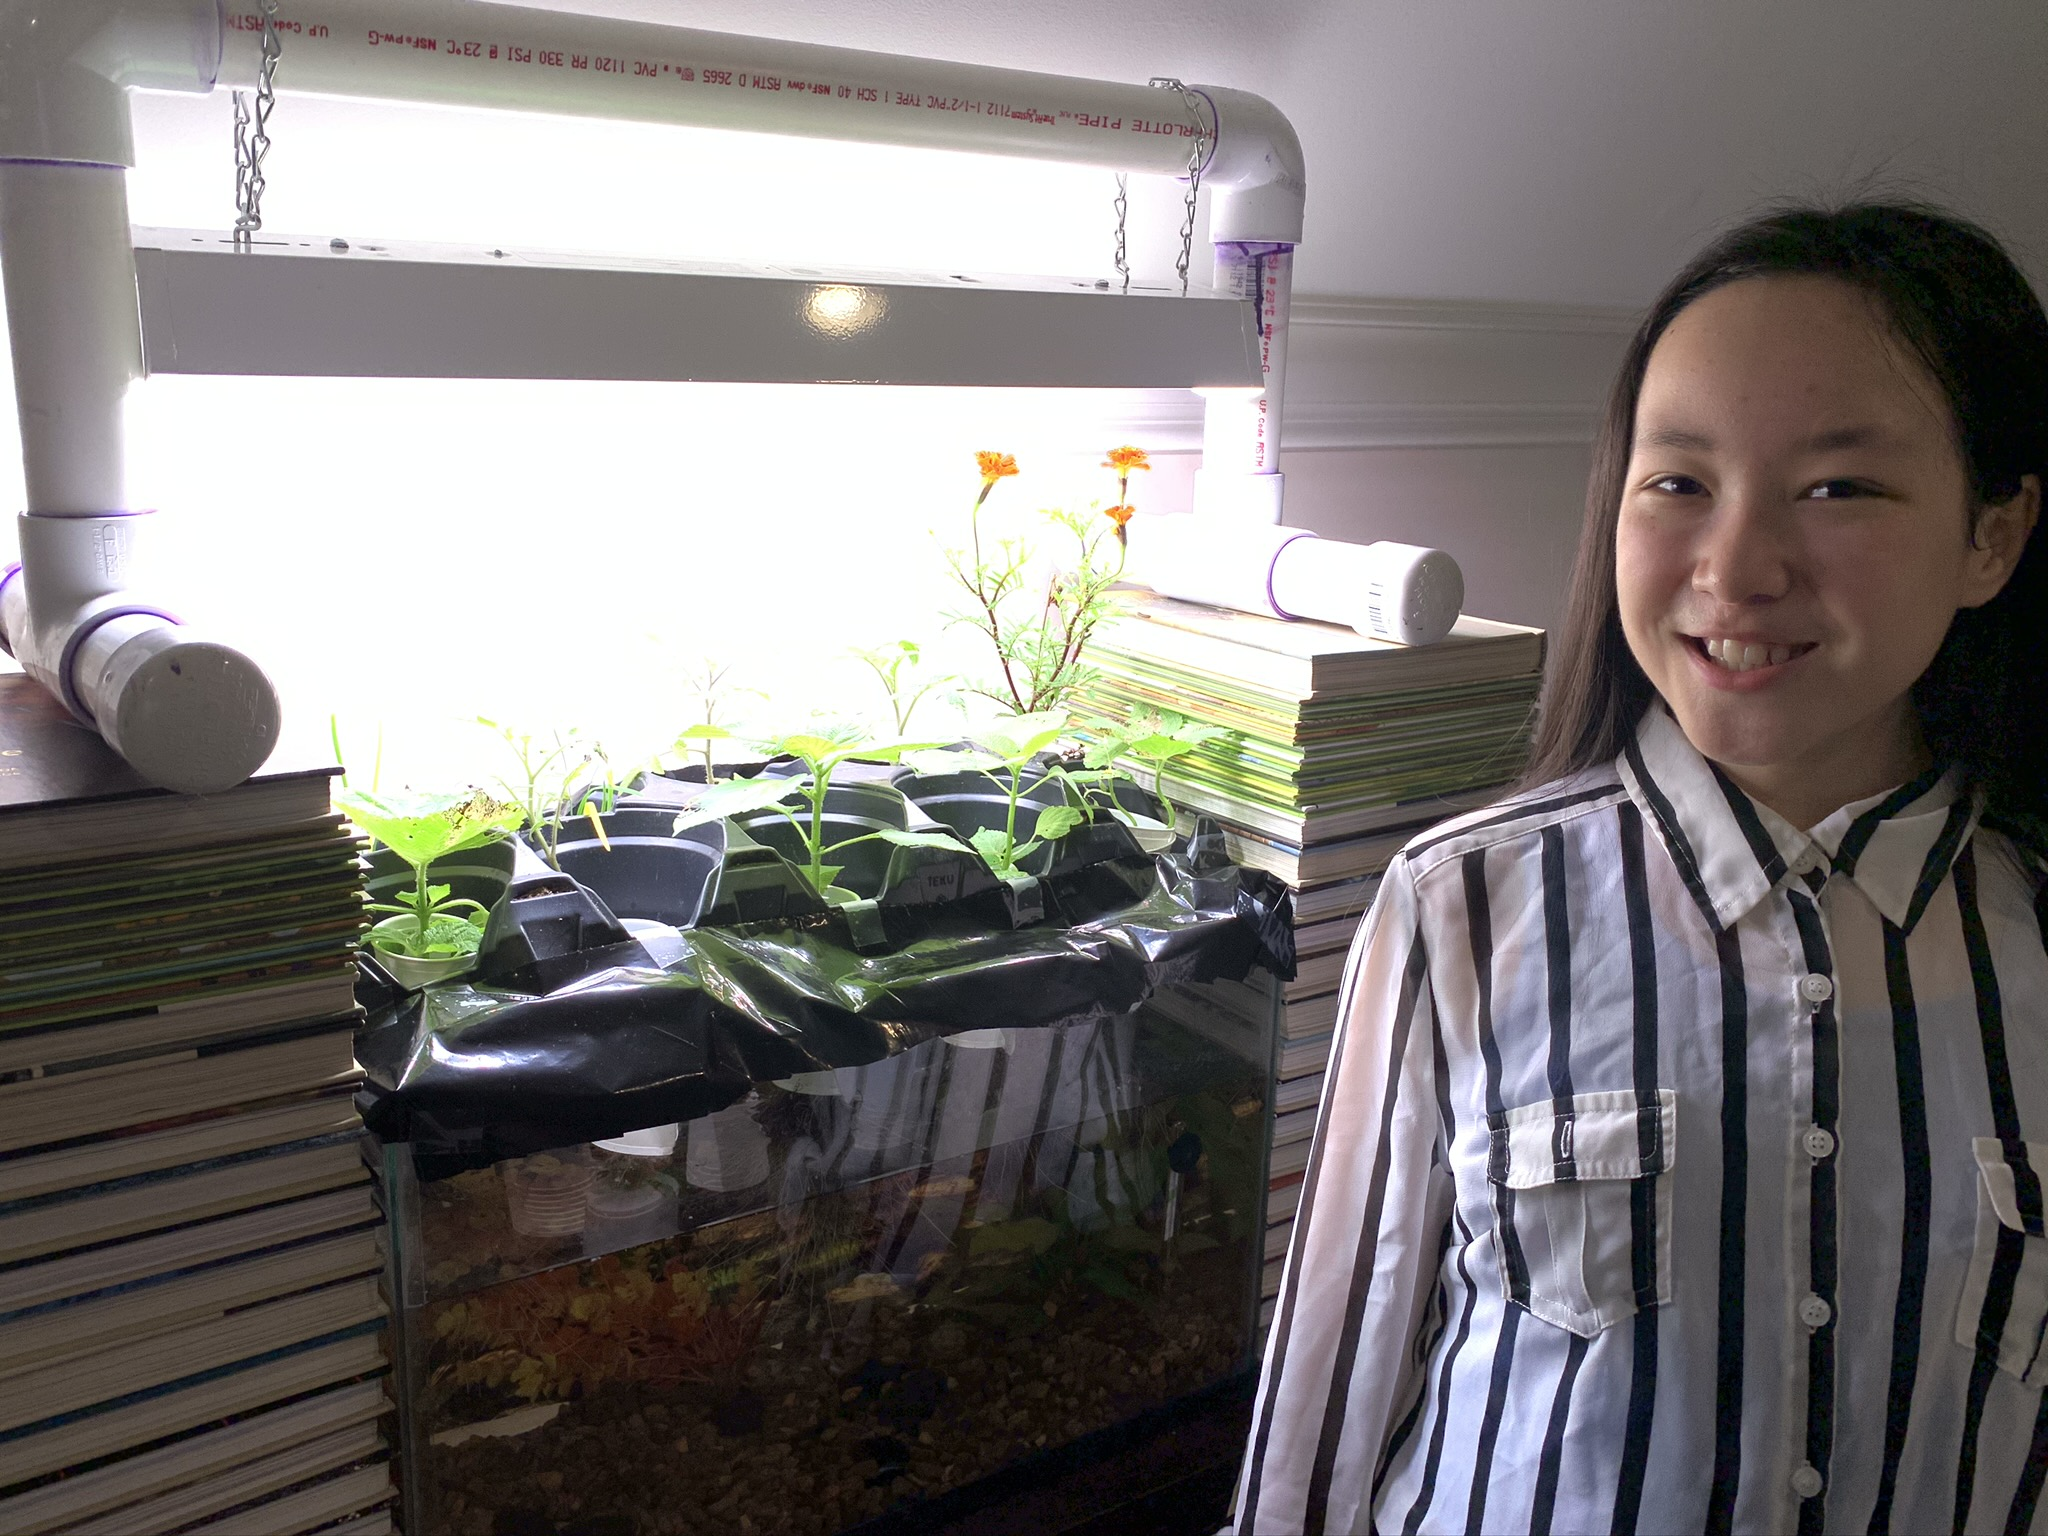 ORISE K-12 competition inspires student to build an aquaponic garden